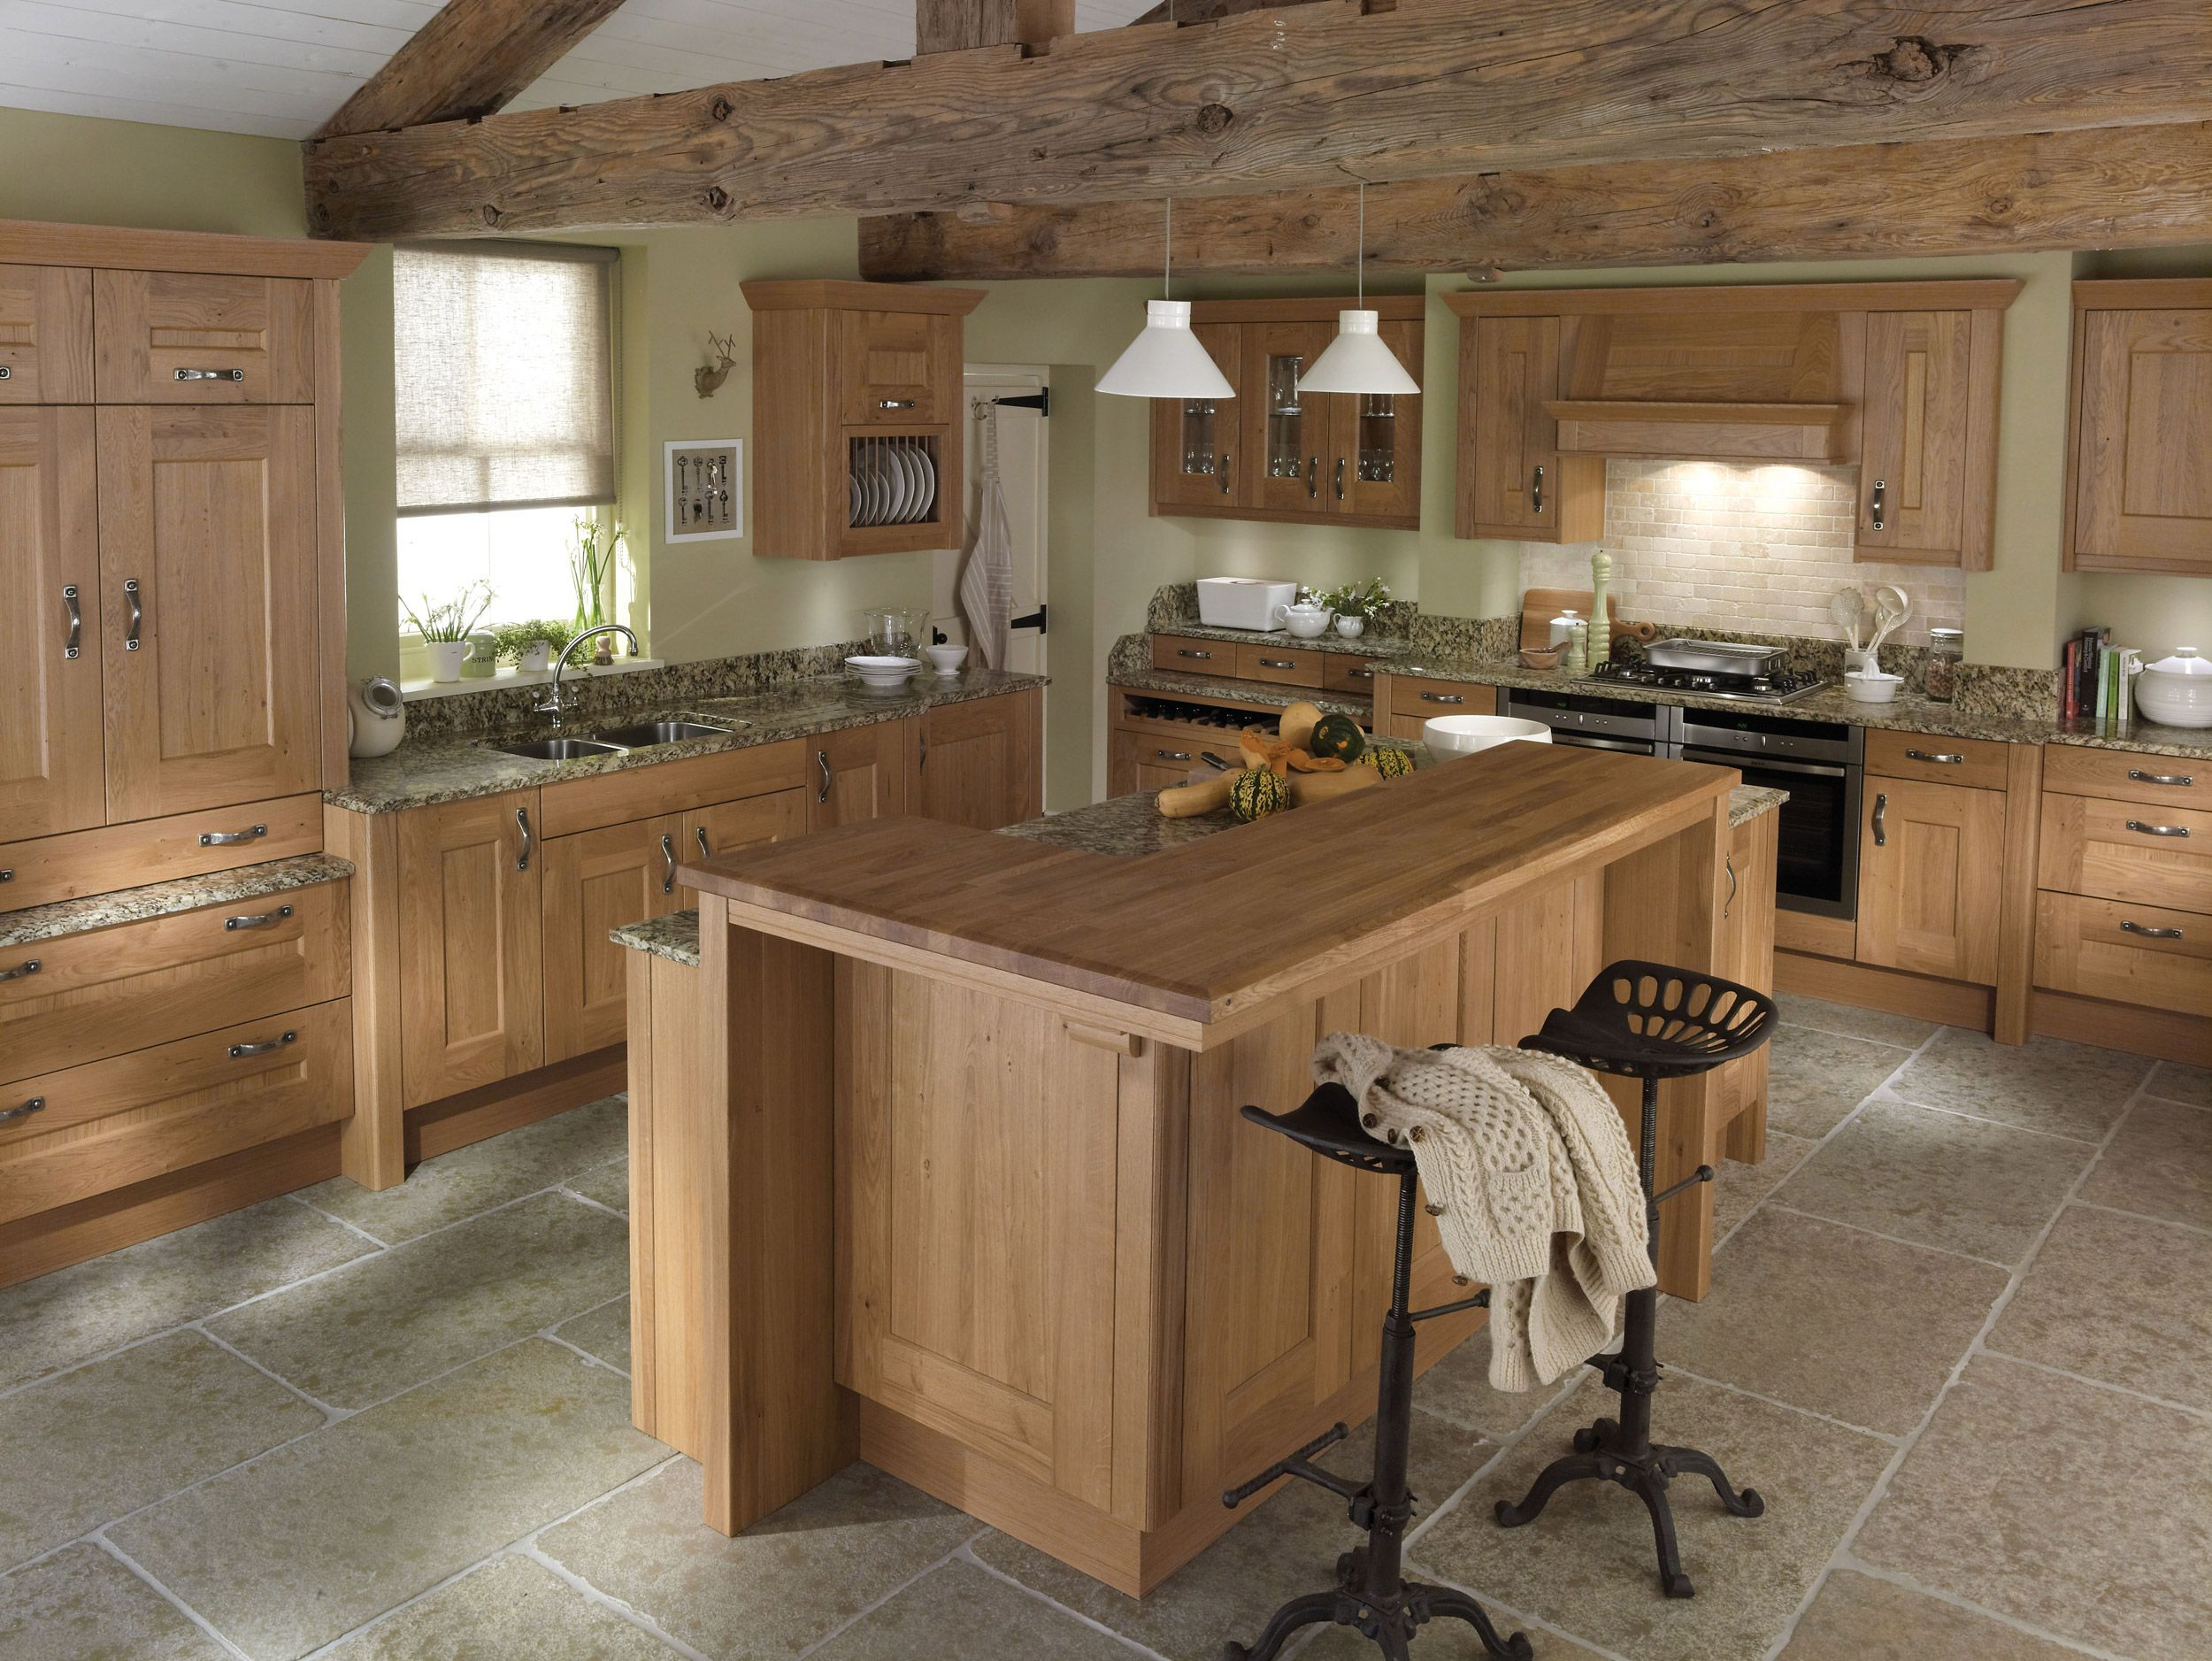 Astonishing Country Style Kitchen With Wooden Cabinet And Dark Stools